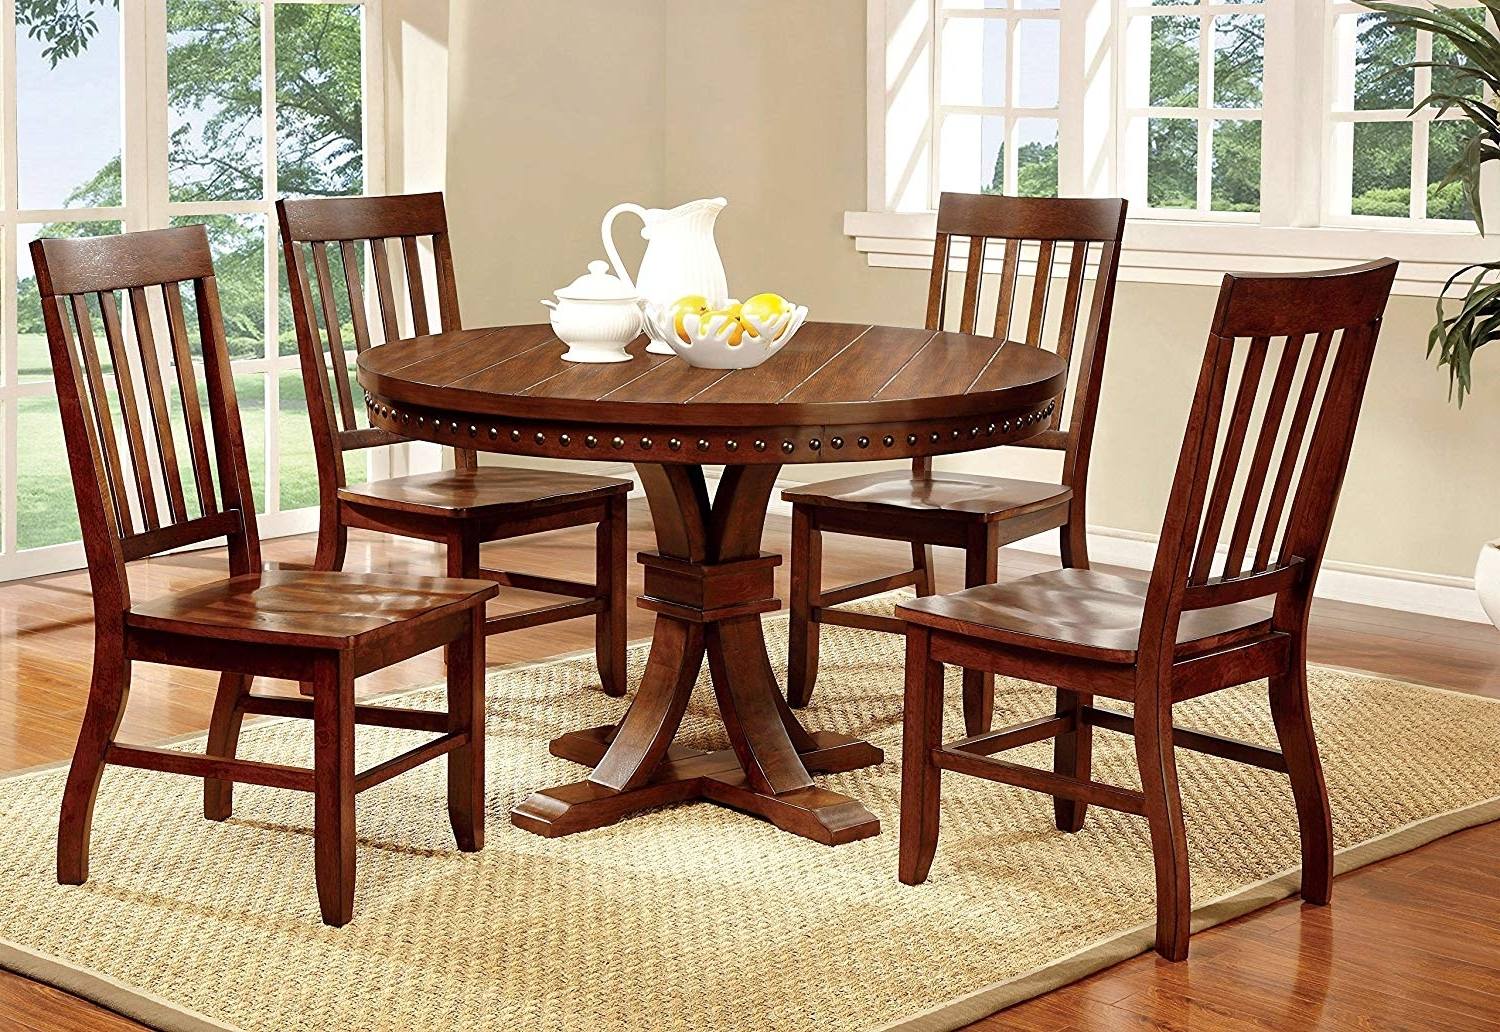 Amazon – Furniture Of America Castile 5 Piece Transitional Round Regarding Fashionable Dining Table Chair Sets (View 4 of 25)